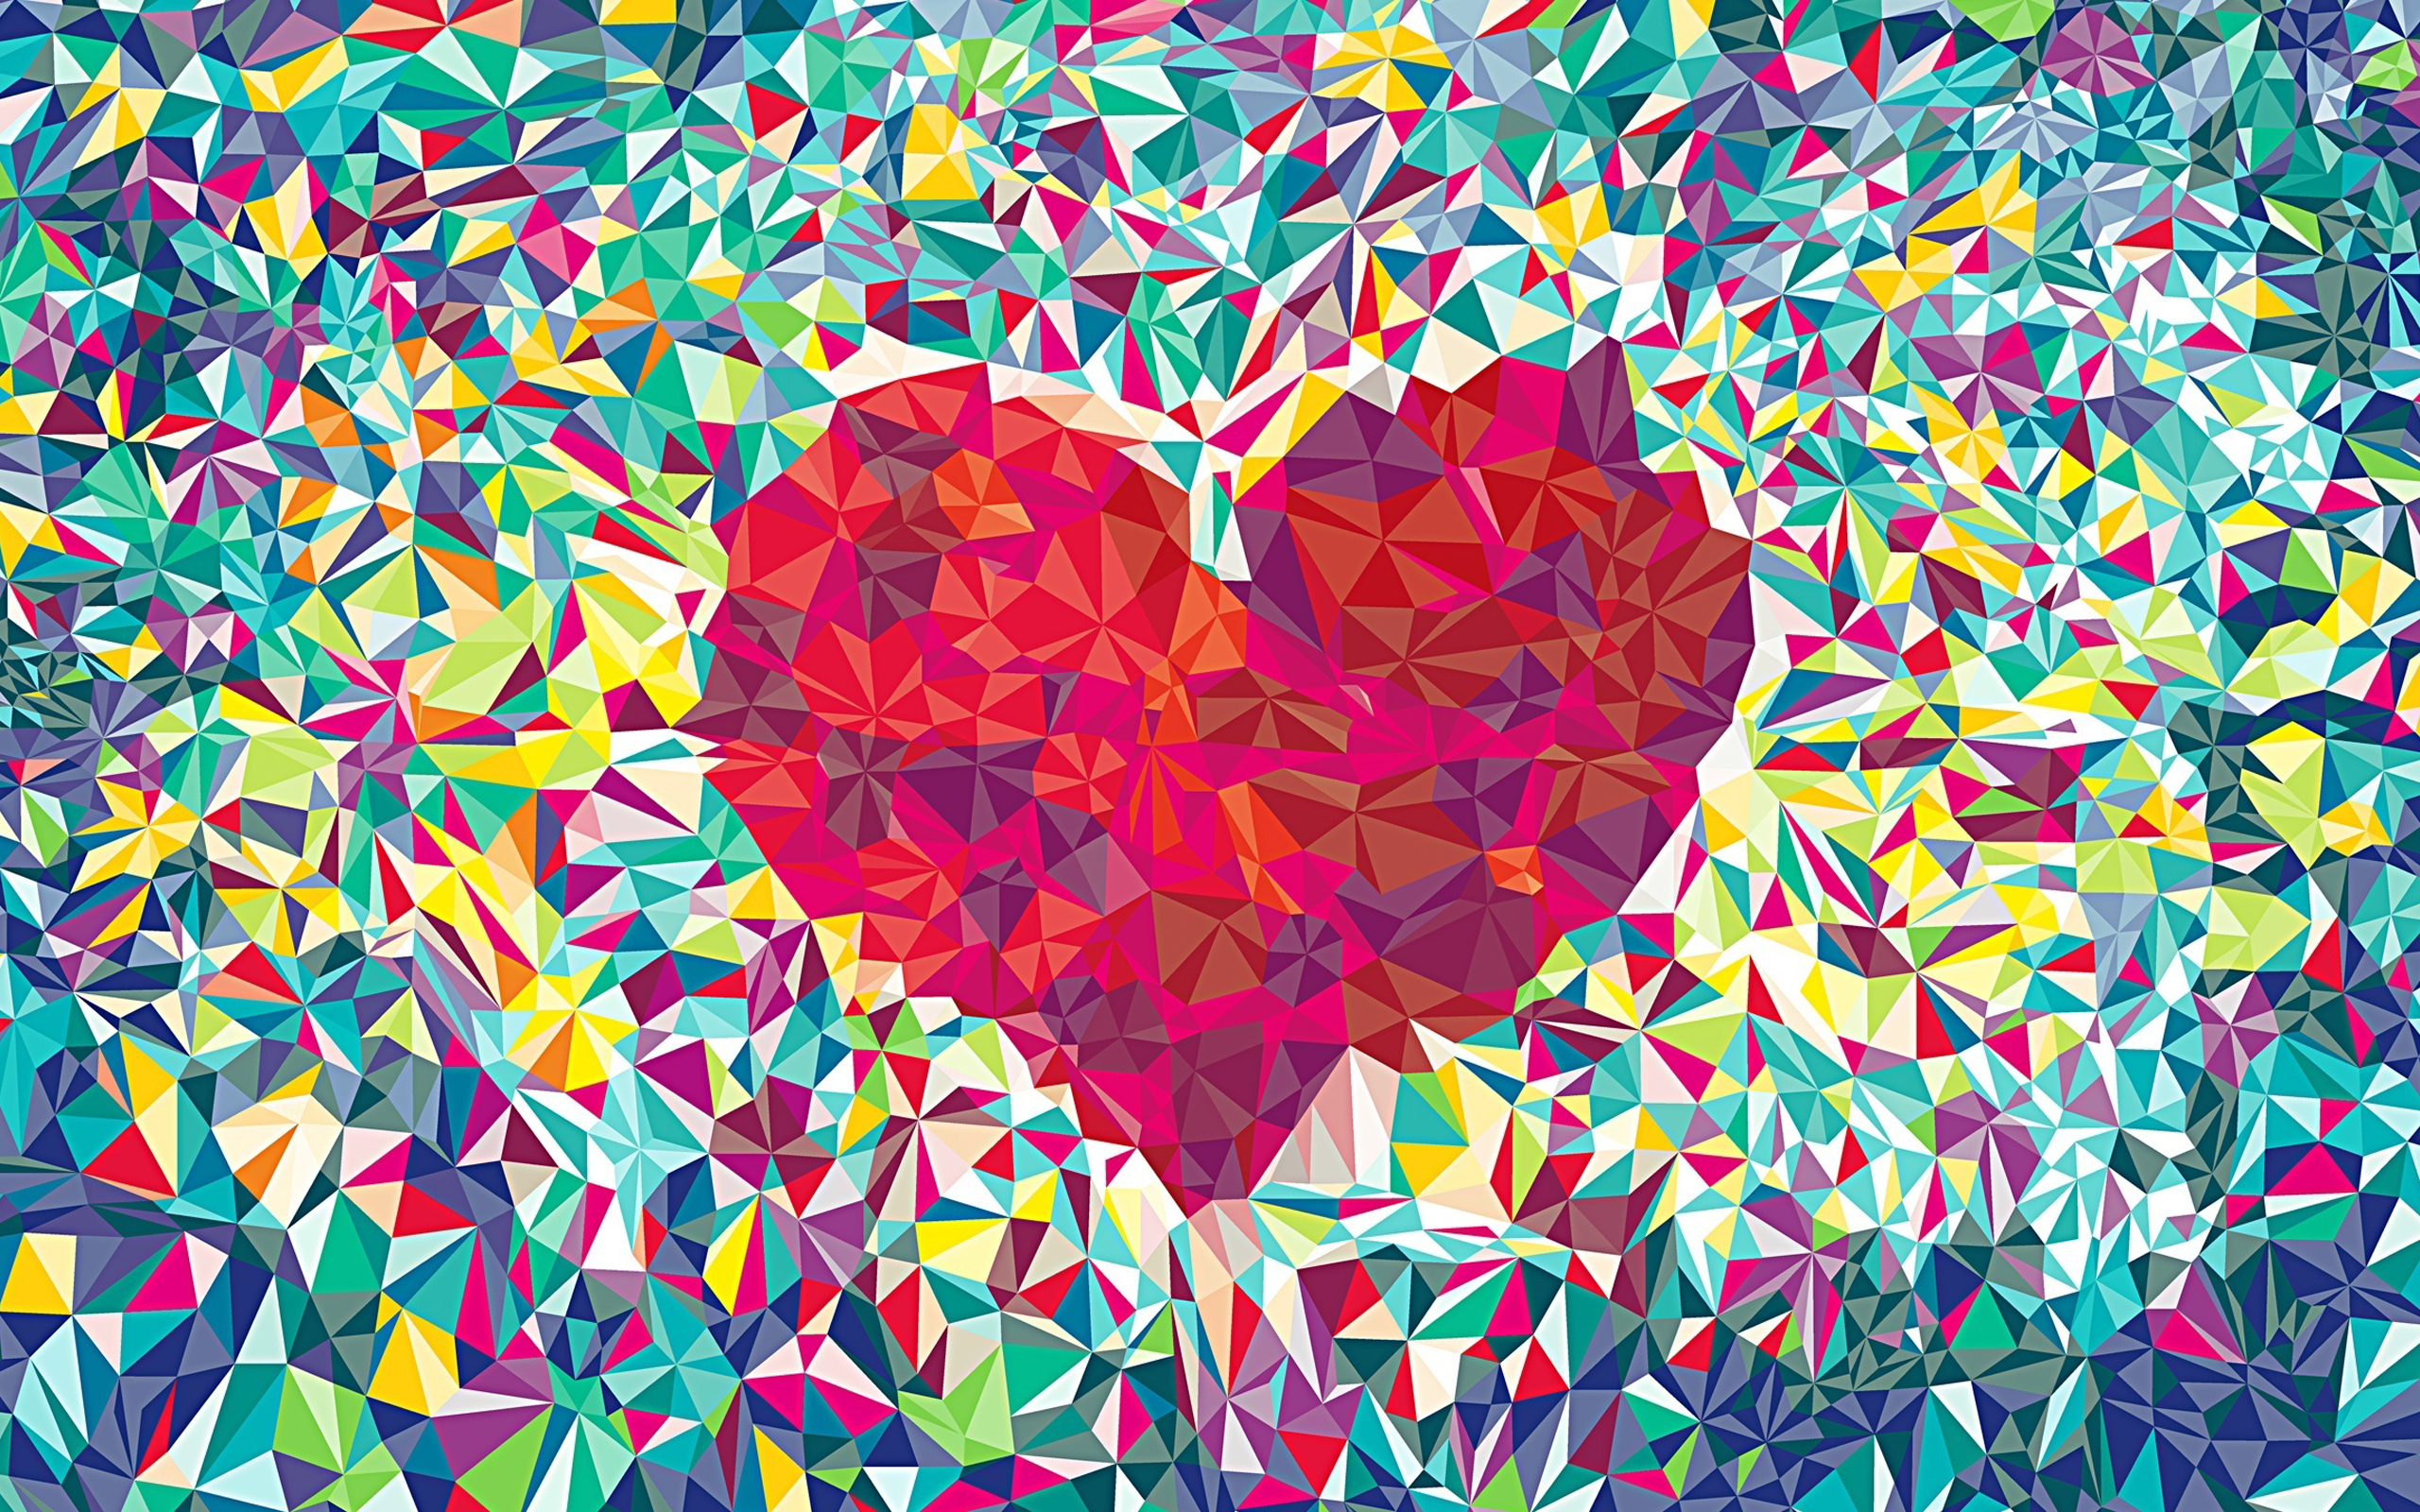 Geometric Heart Abstract Wallpapers 690.13 Kb